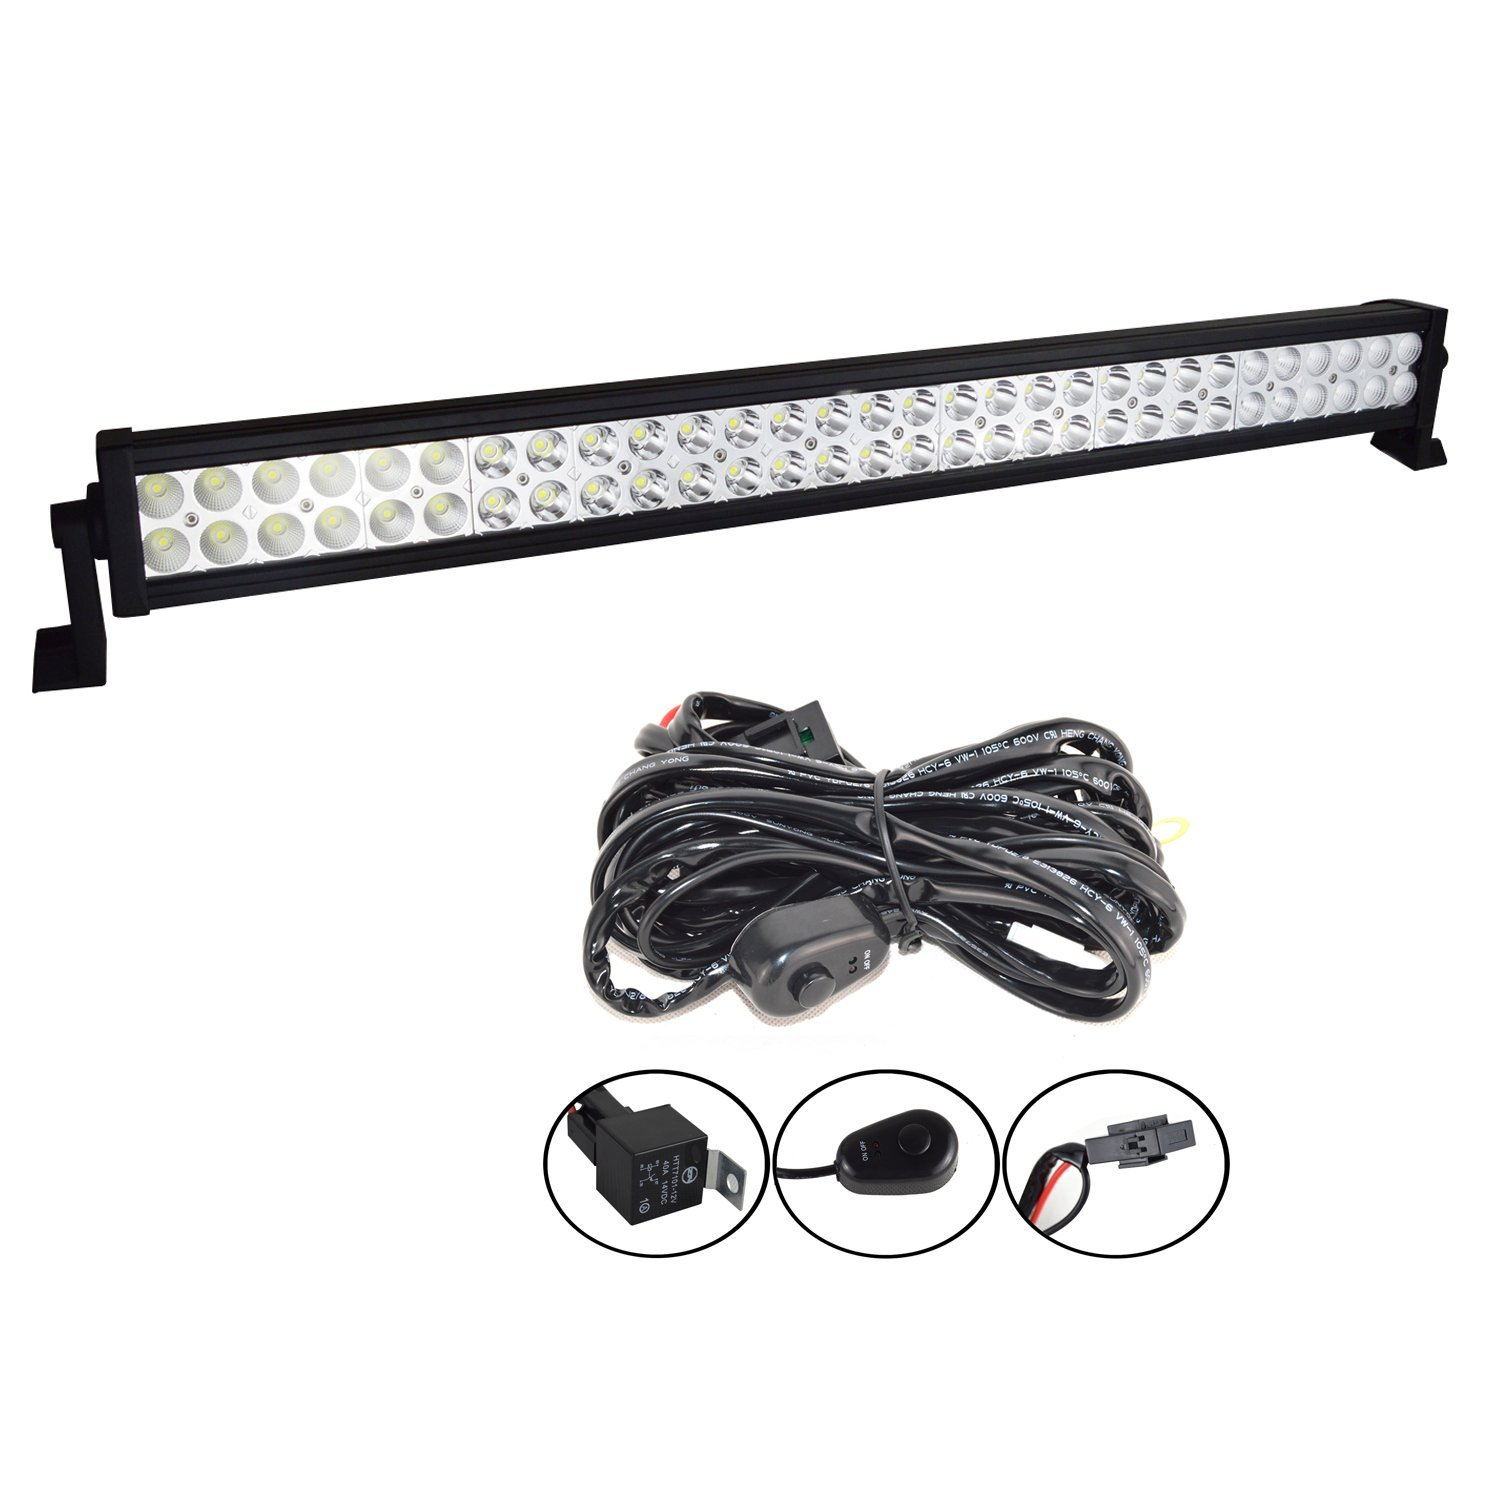 Cheap Truck Light Wiring Find Deals On Line At Driving Kit Get Quotations Willpower 34 Inch 180w Combo Led Work Bar Harness For